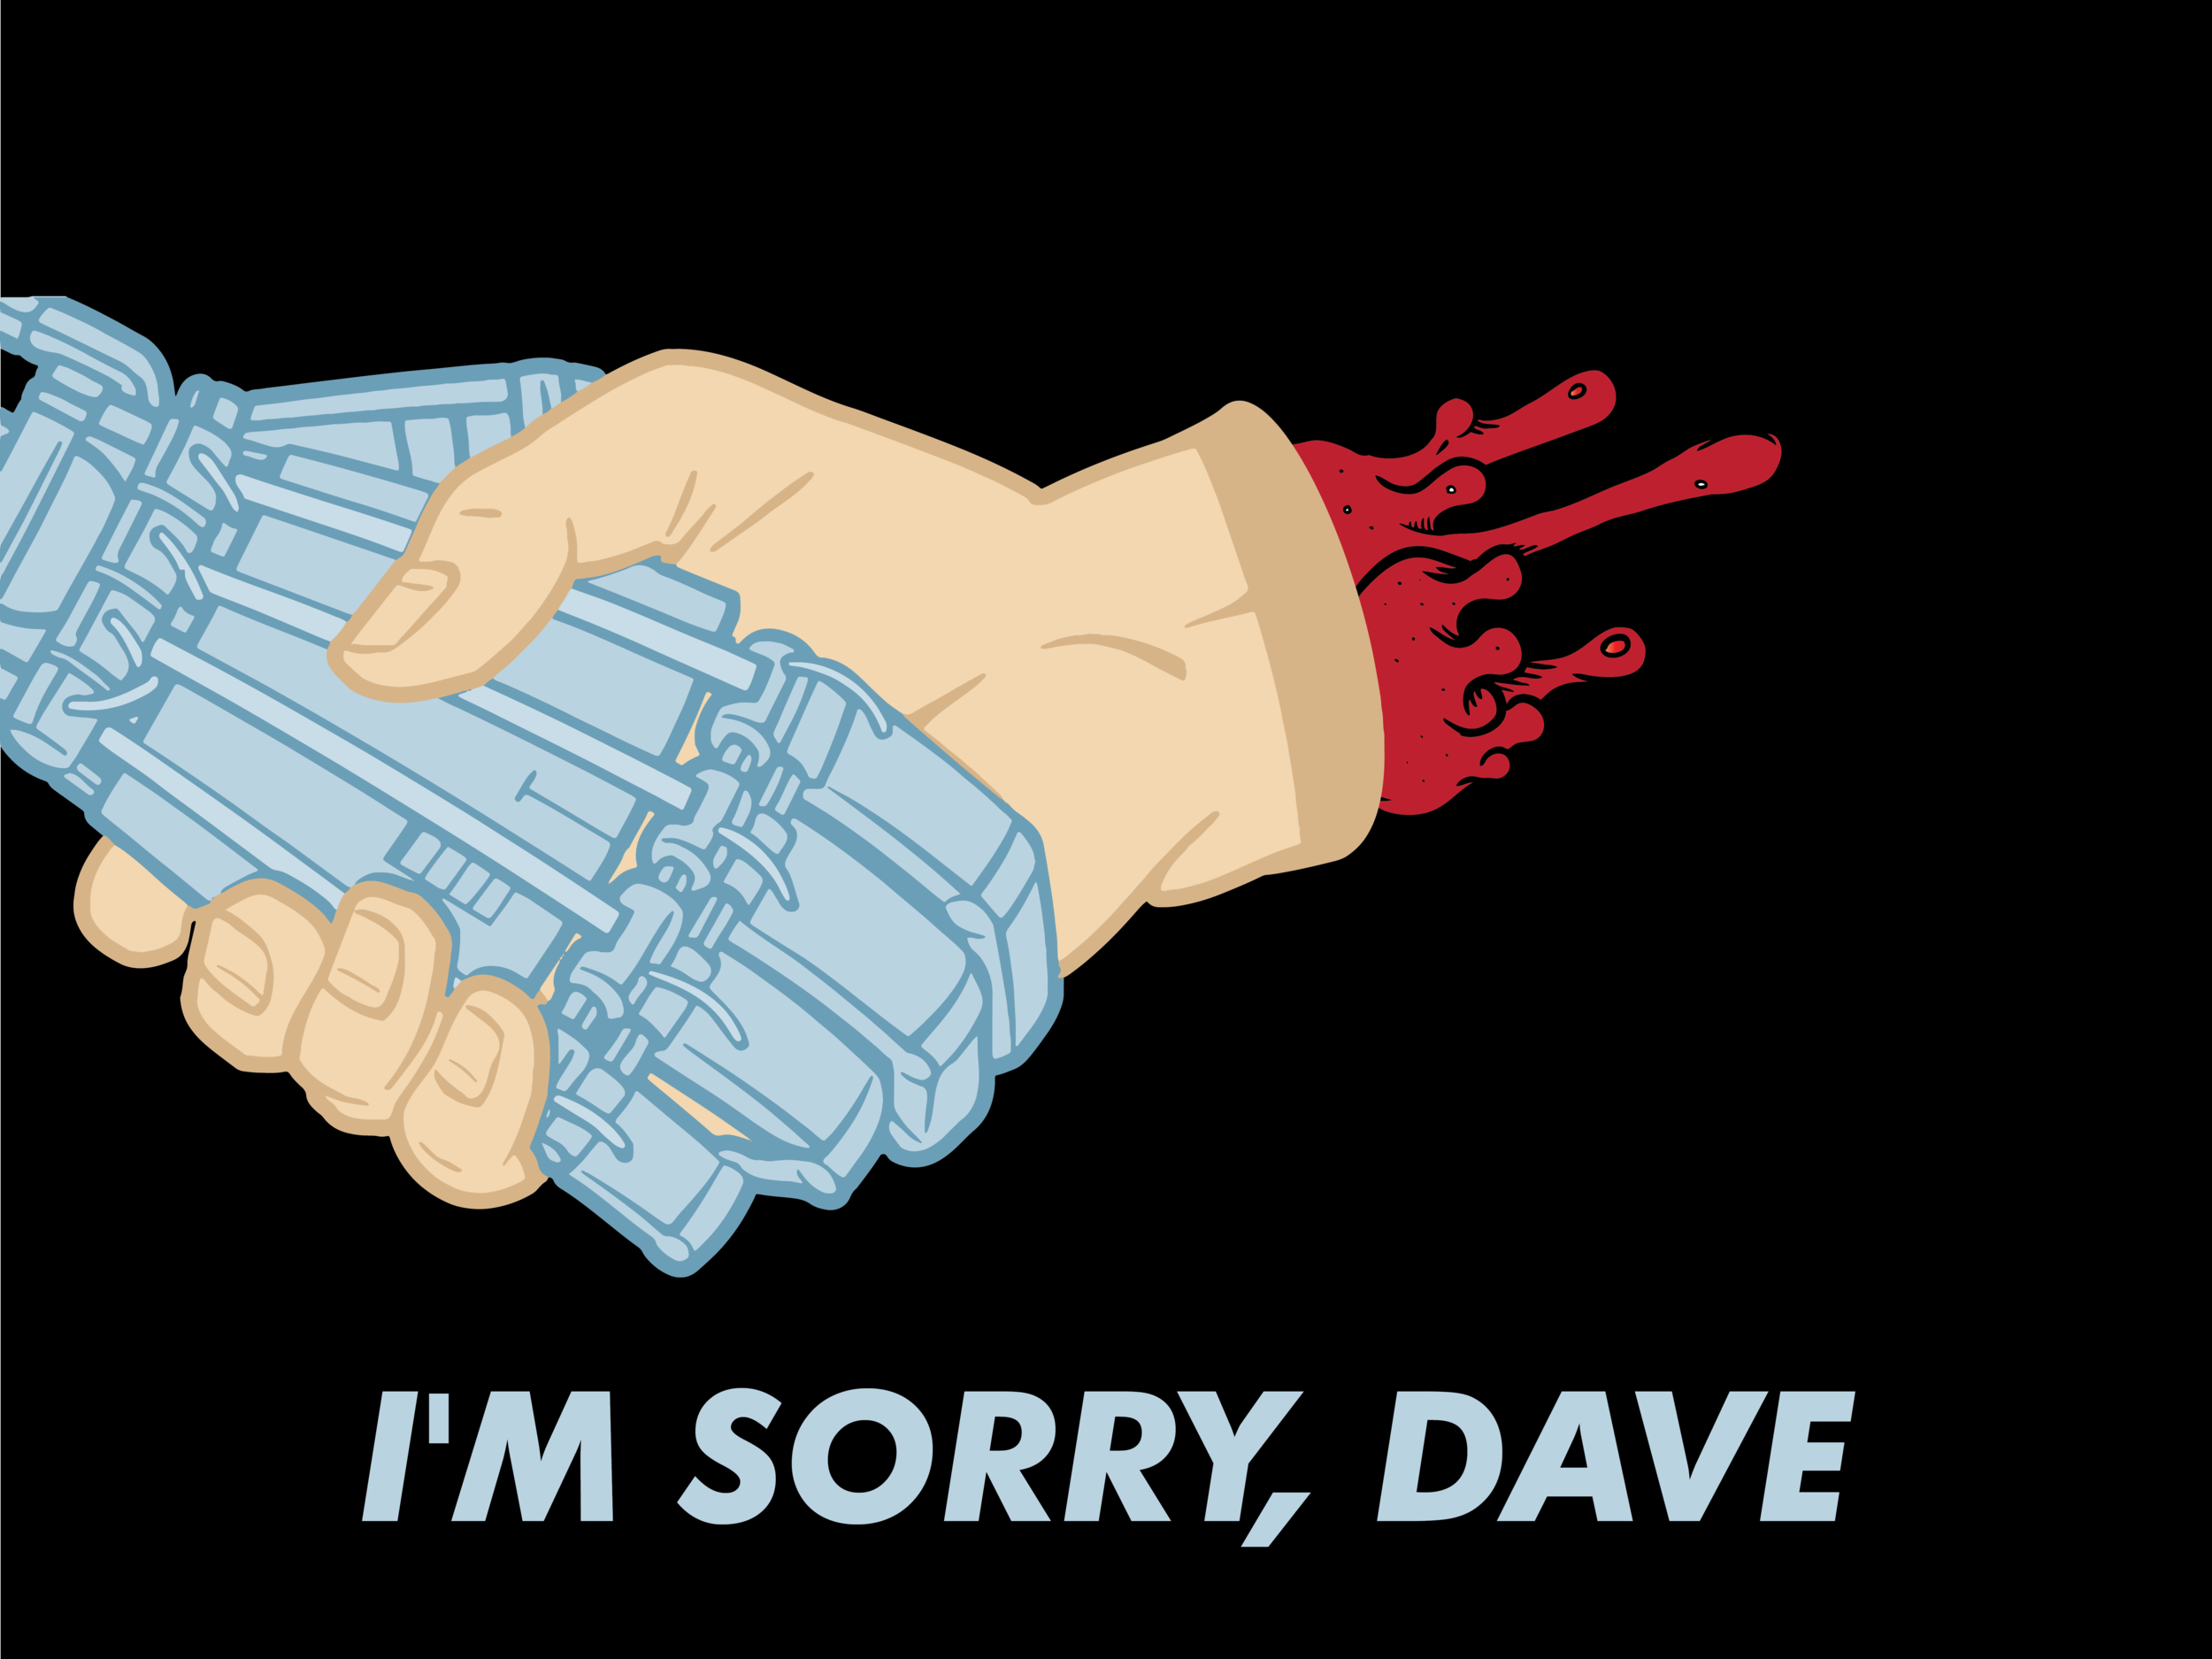 im sorry dave 3-01.png